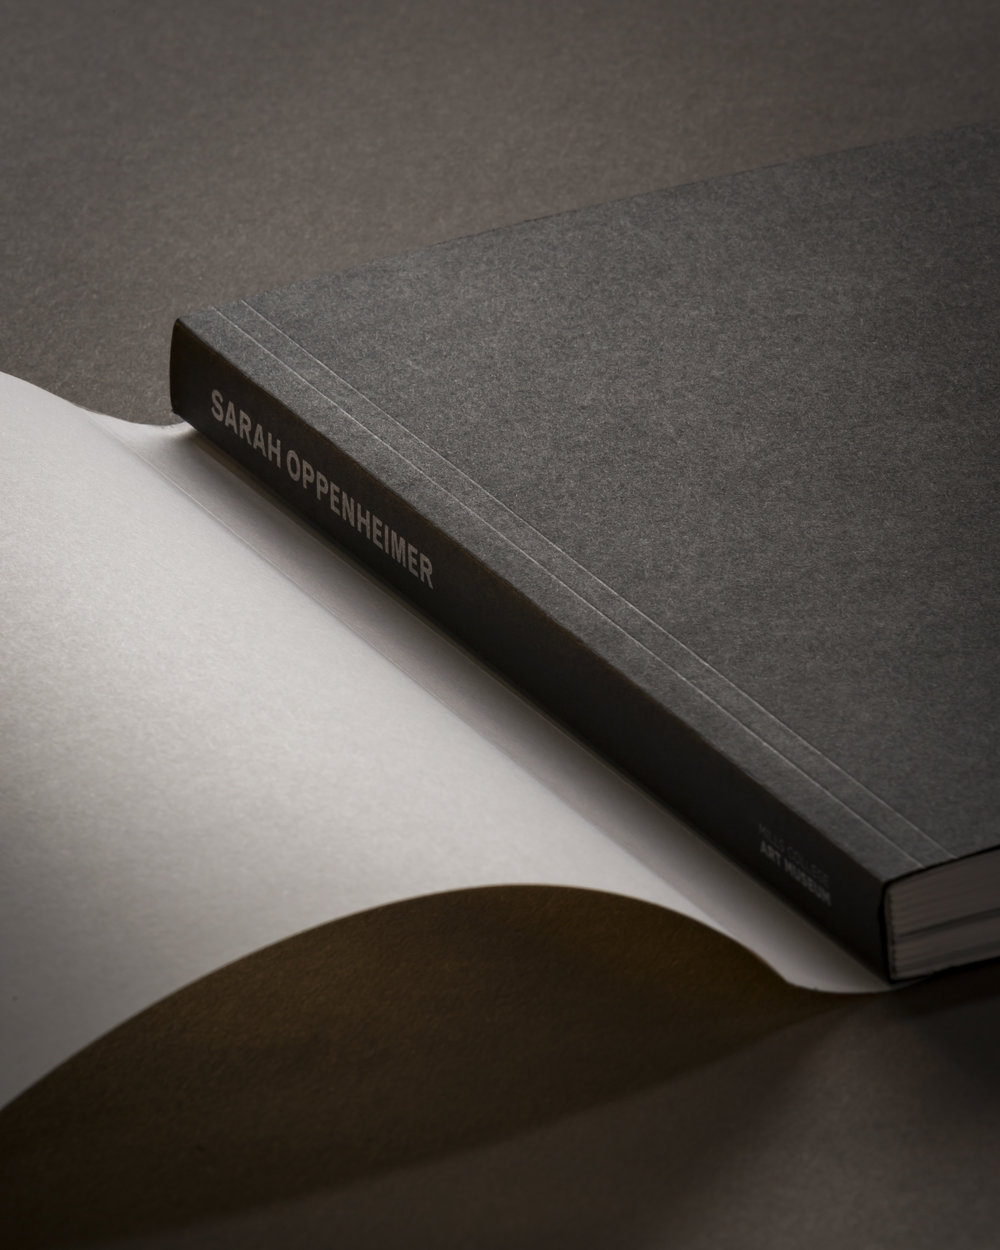 Offset printed and lay-flat perfect bound